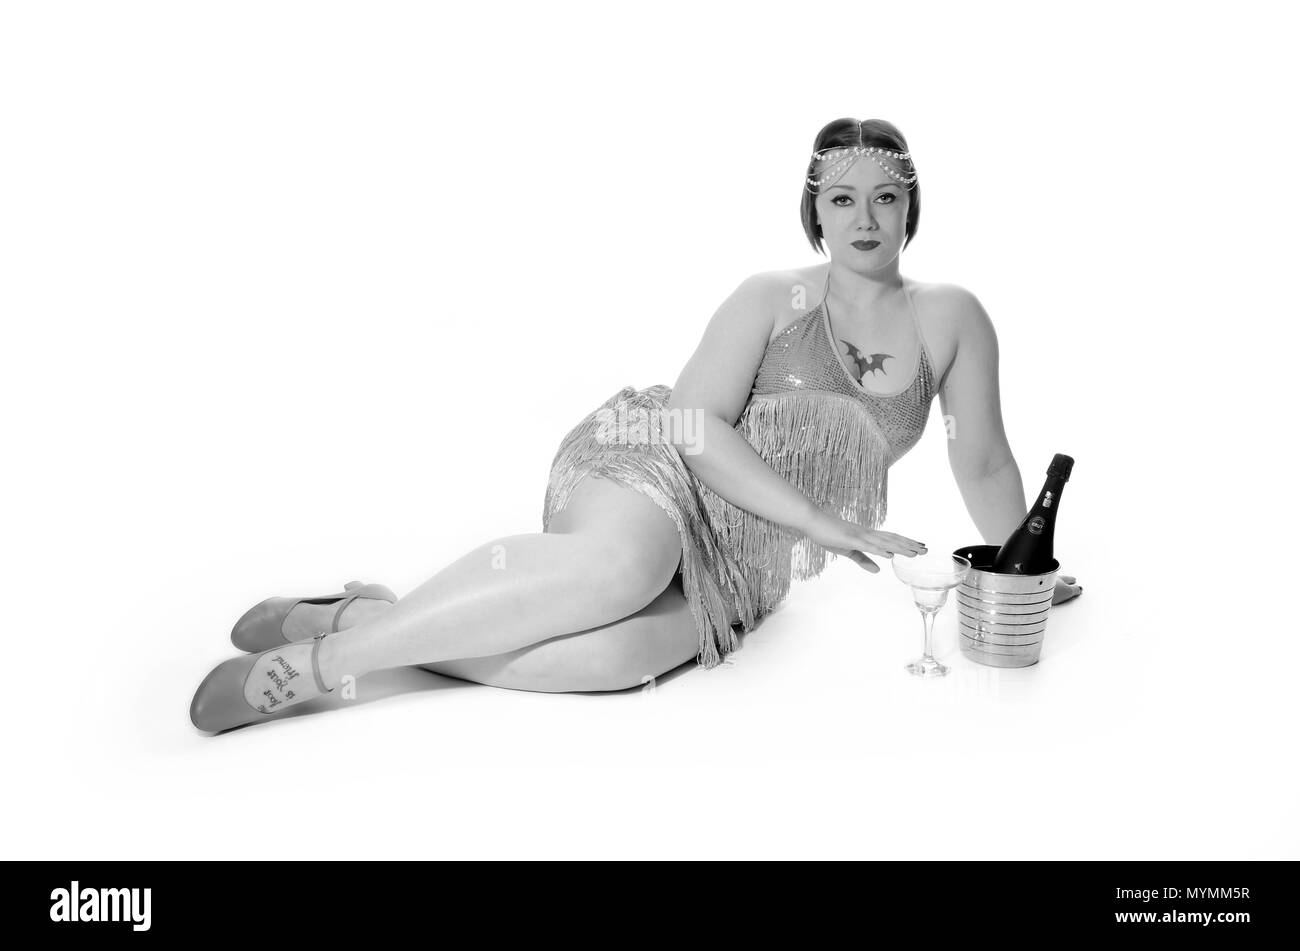 1920s flapper girl drinking alcohol - Stock Image